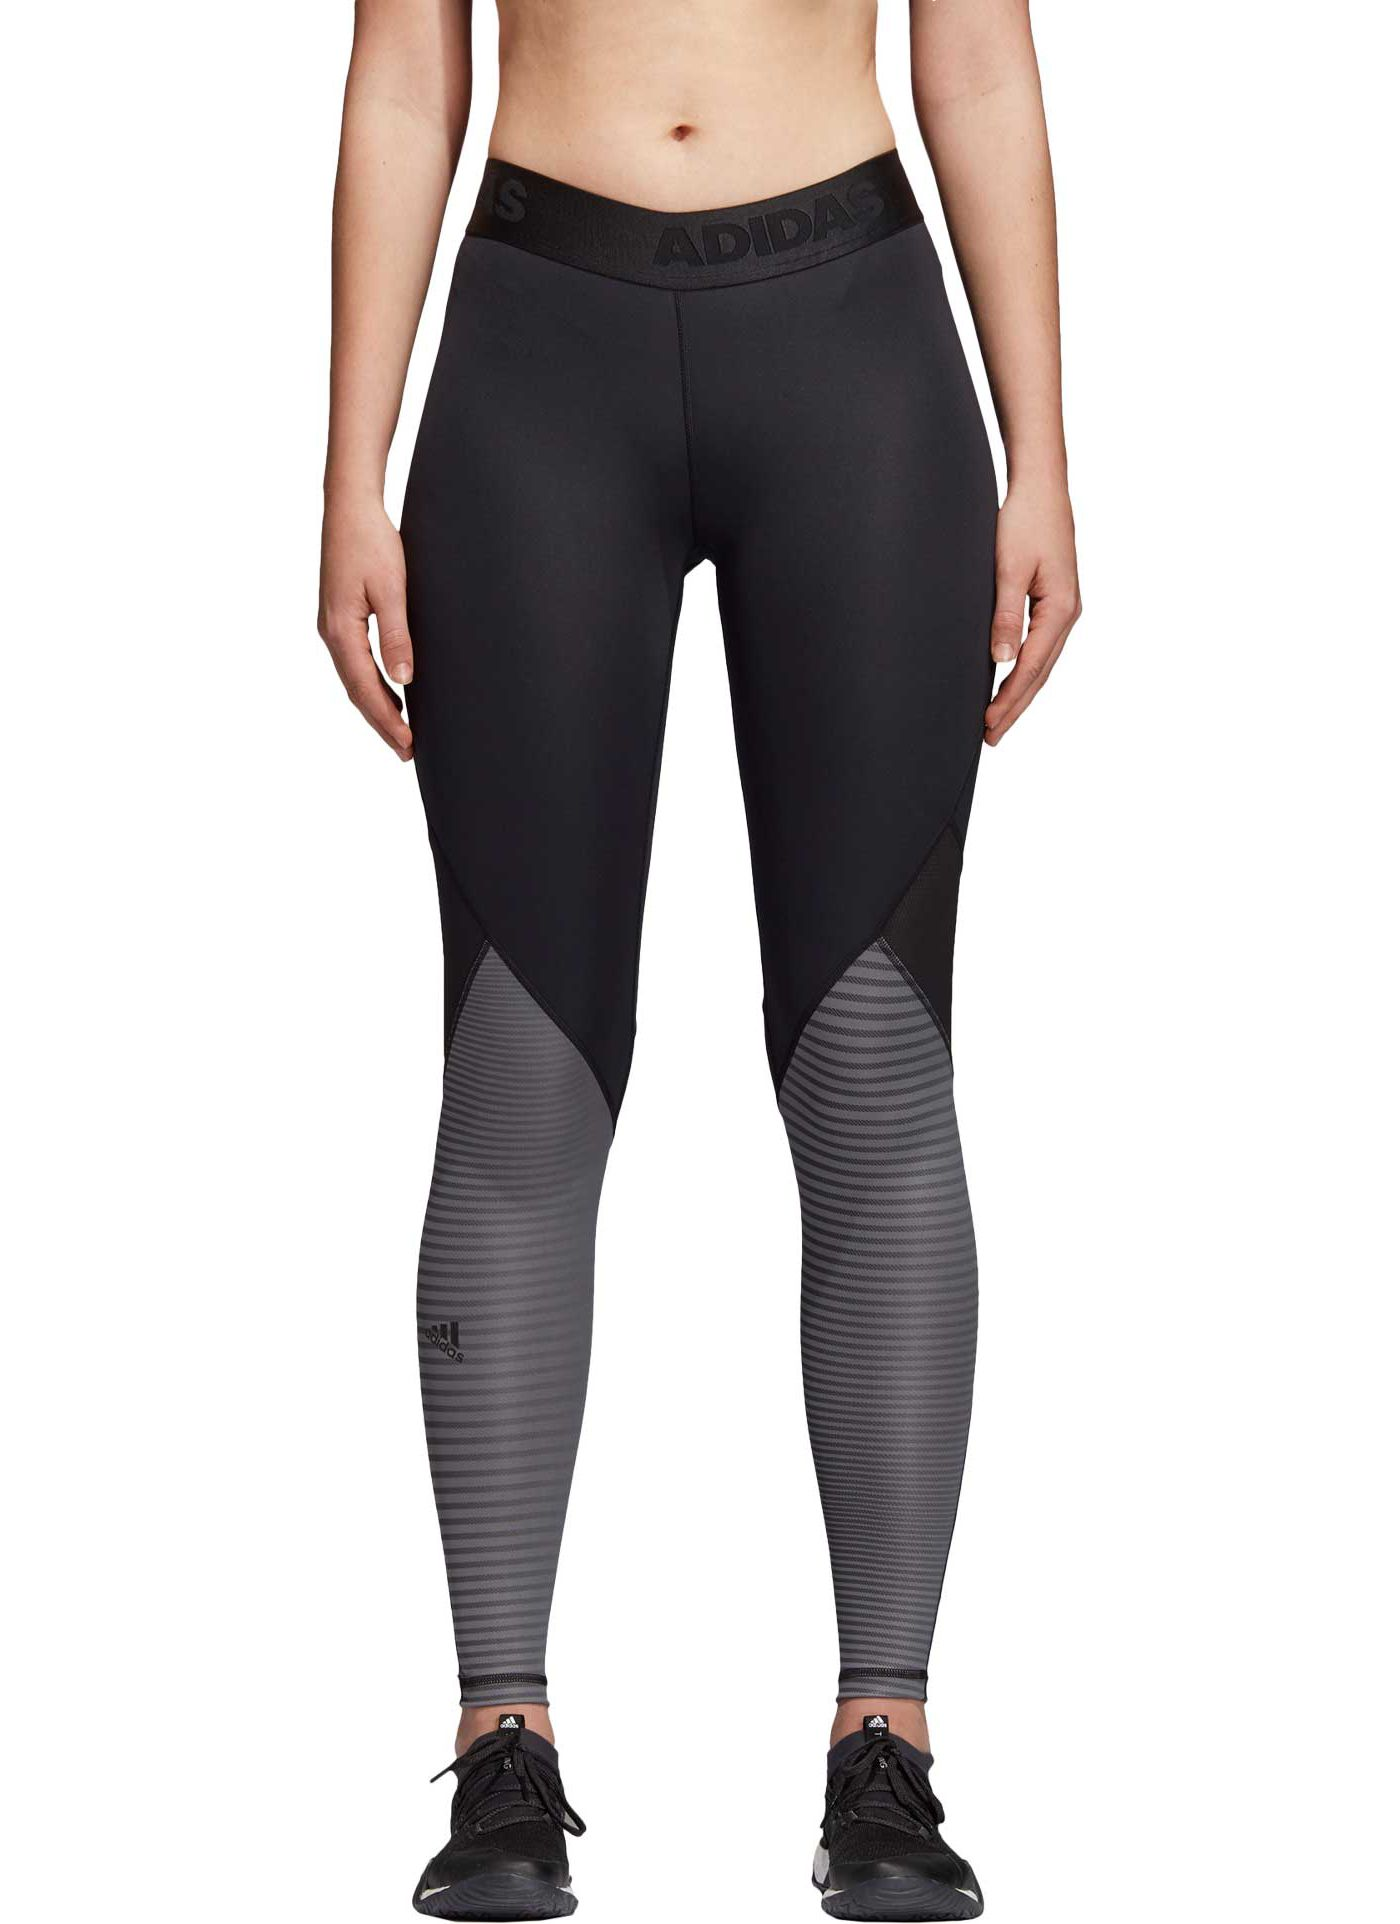 adidas Women's Alphaskin Sport Long Printed Tights